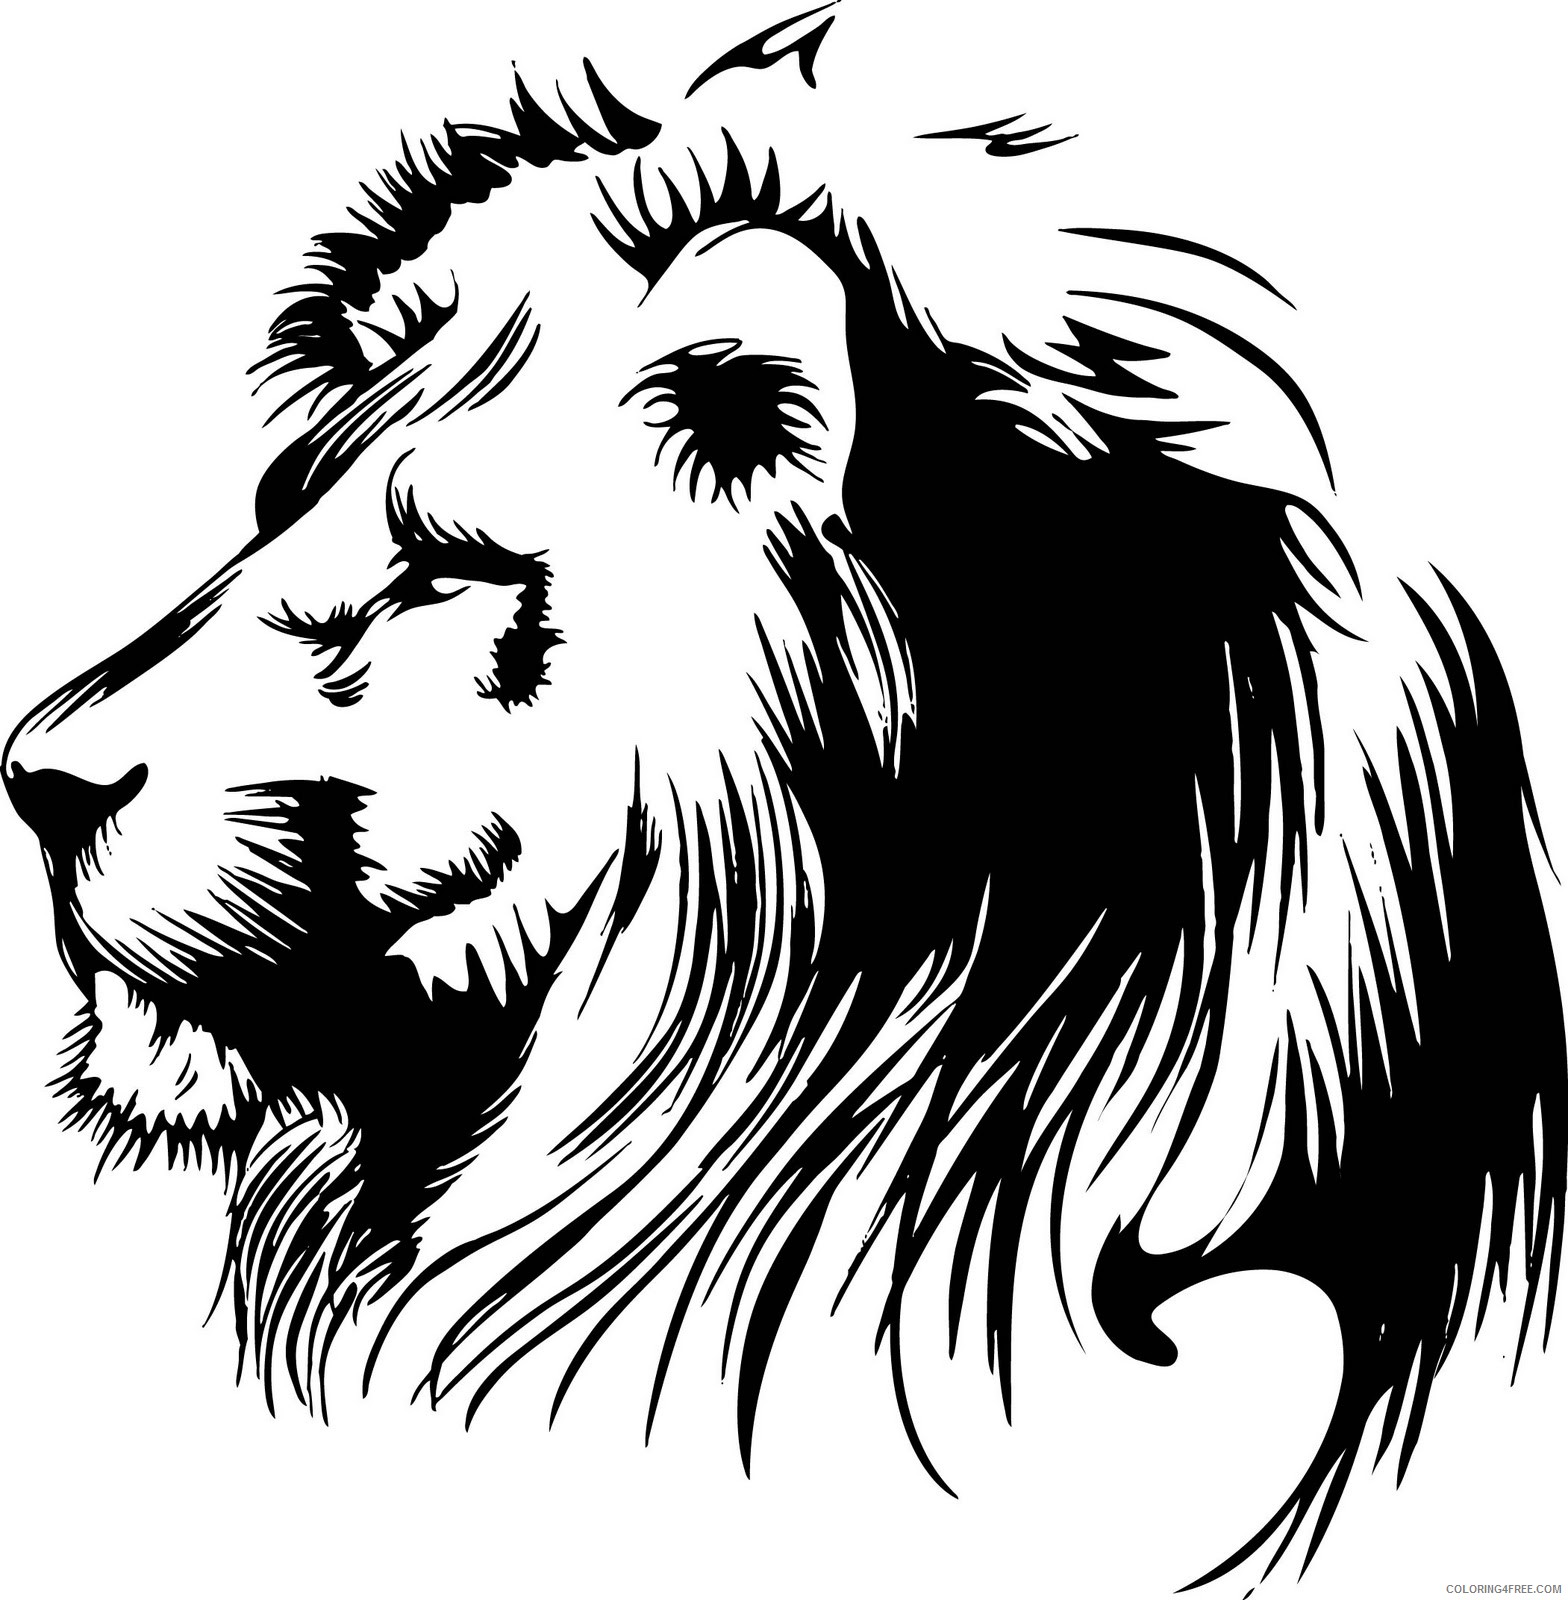 Lion Head Coloring Pages vectorian art lion head vectorfree Printable Coloring4free